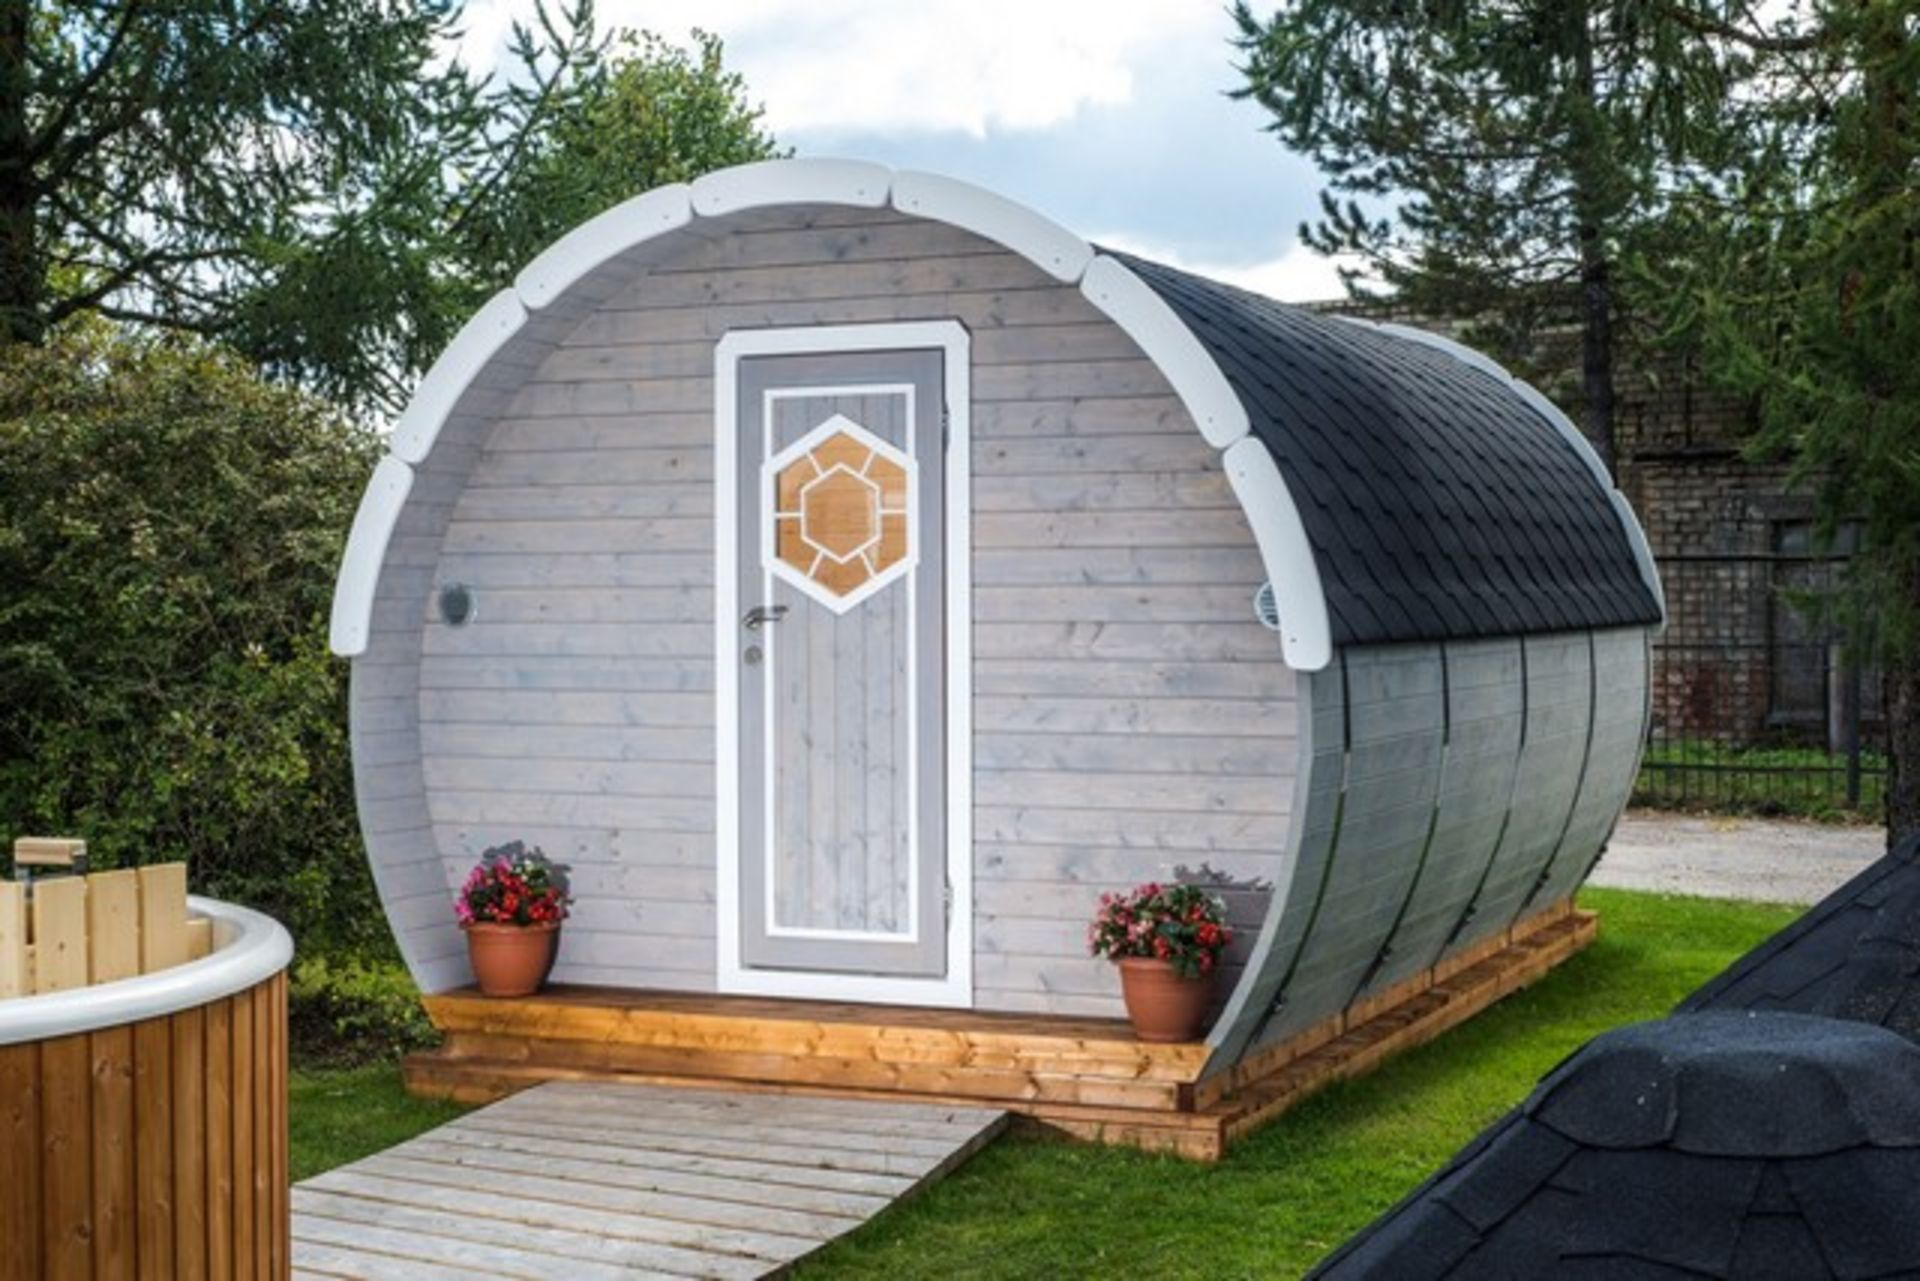 Lot 18008 - V Brand New 9.5M sq Ice-Viking Barrel- Two Rooms (2x2.3m Sleeping Room and Entrance room with